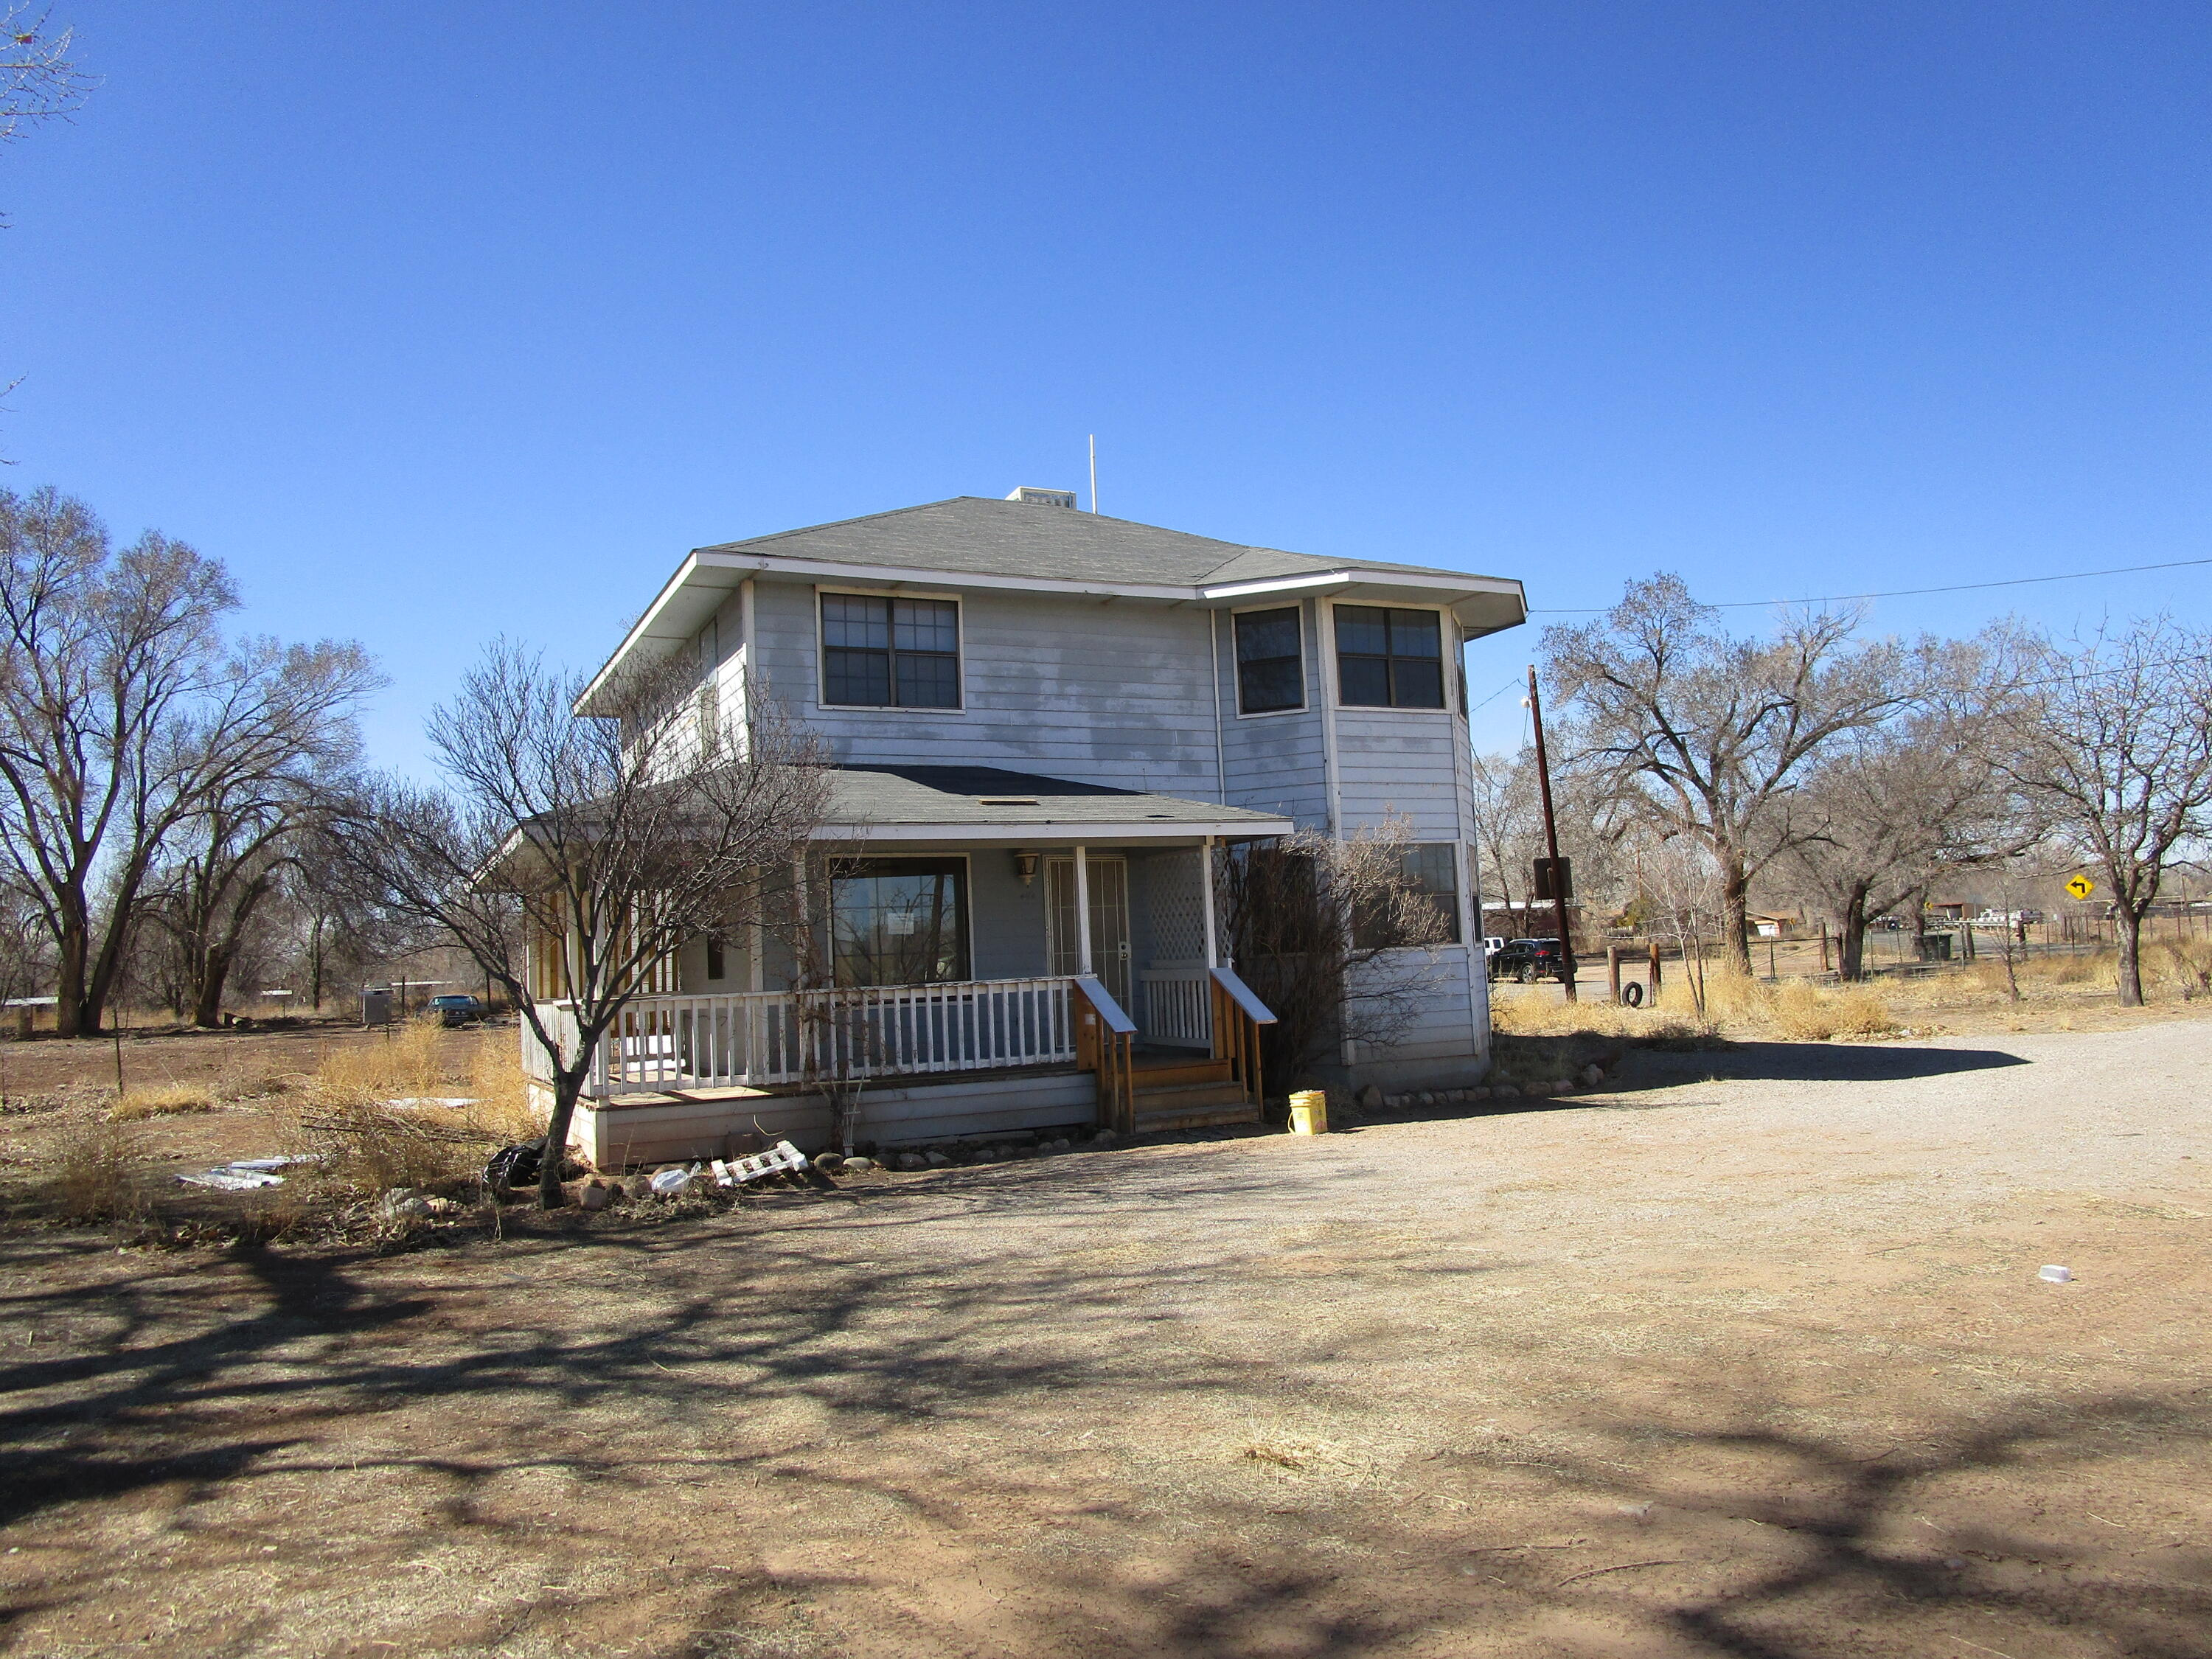 Wonderful Opportunity  home located in the heart of Peralta. Close to schools shopping and 20 minutes from Albuquerque. Perfect to add all your touches.